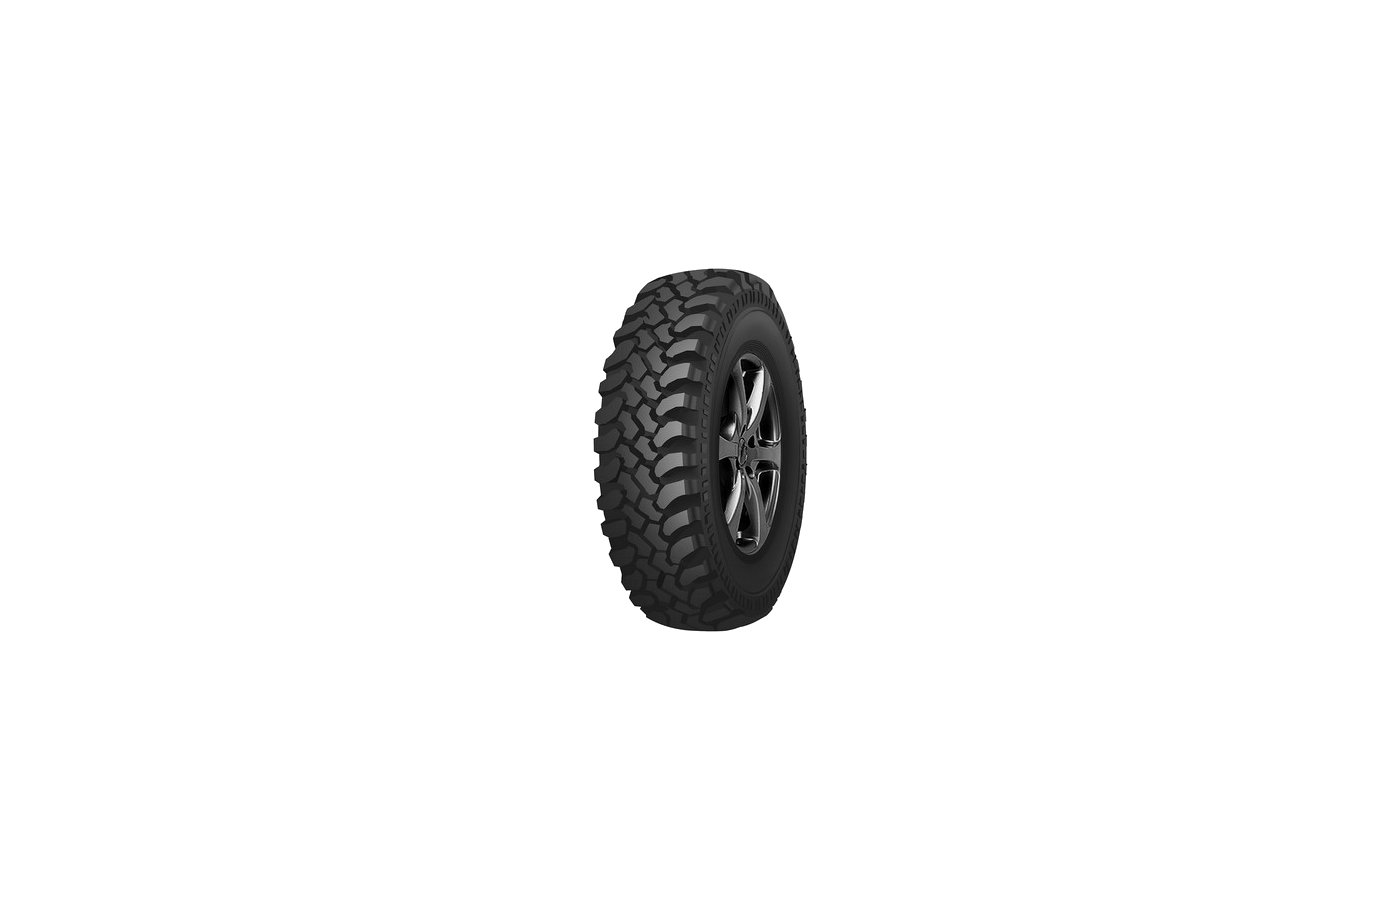 Шина БрШЗ Forward Safari 540 235/75 R15 TL 105P